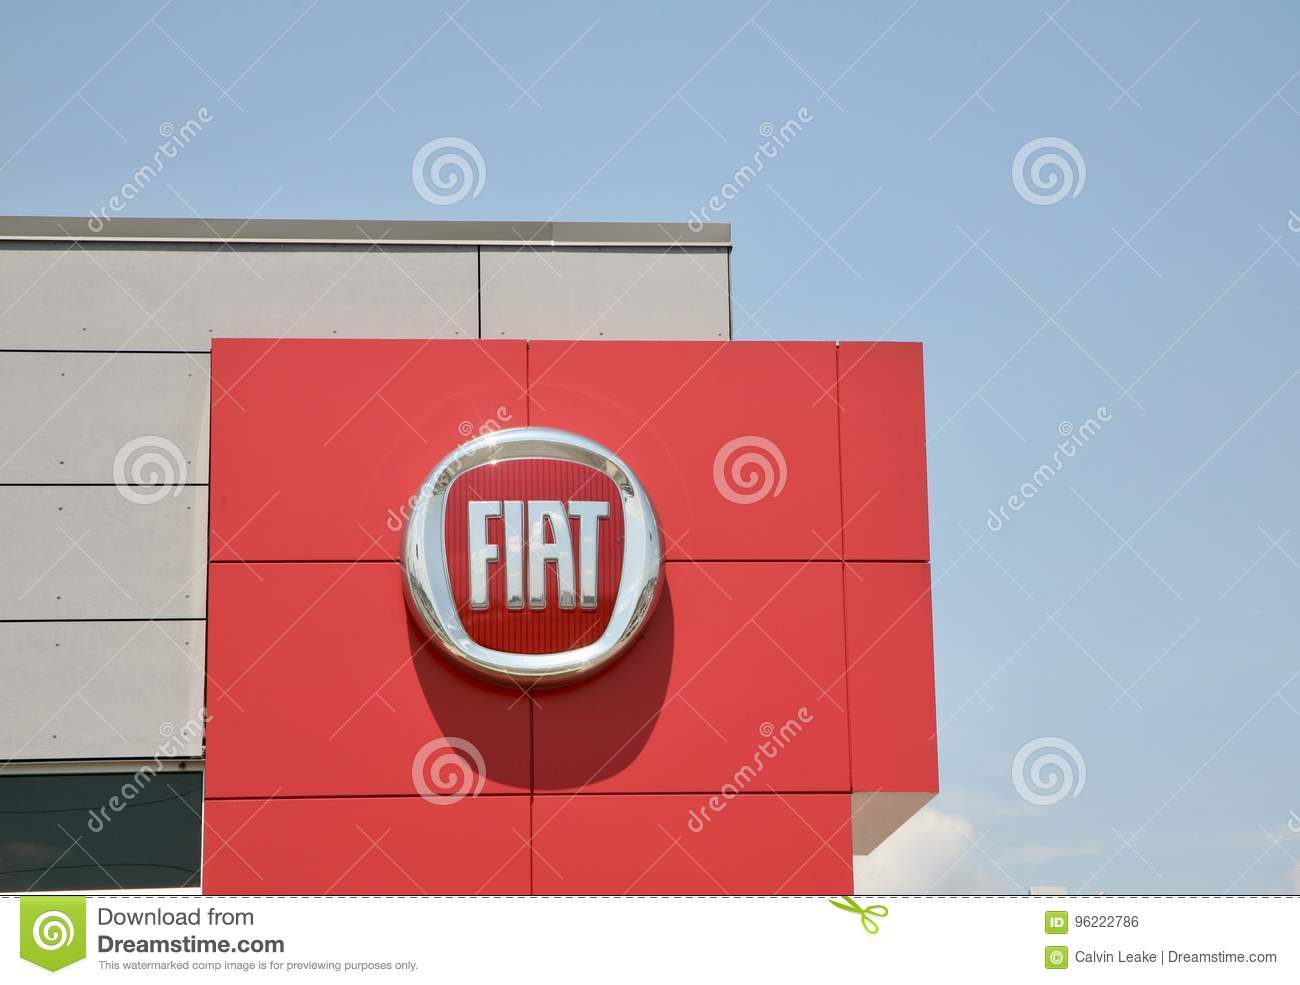 fiat automobile corporation essay The wallace group case analysis essay - the wallace group case analysis introduction the wallace group is a diversified company that deals in the manufacture and development of technical products and systems.